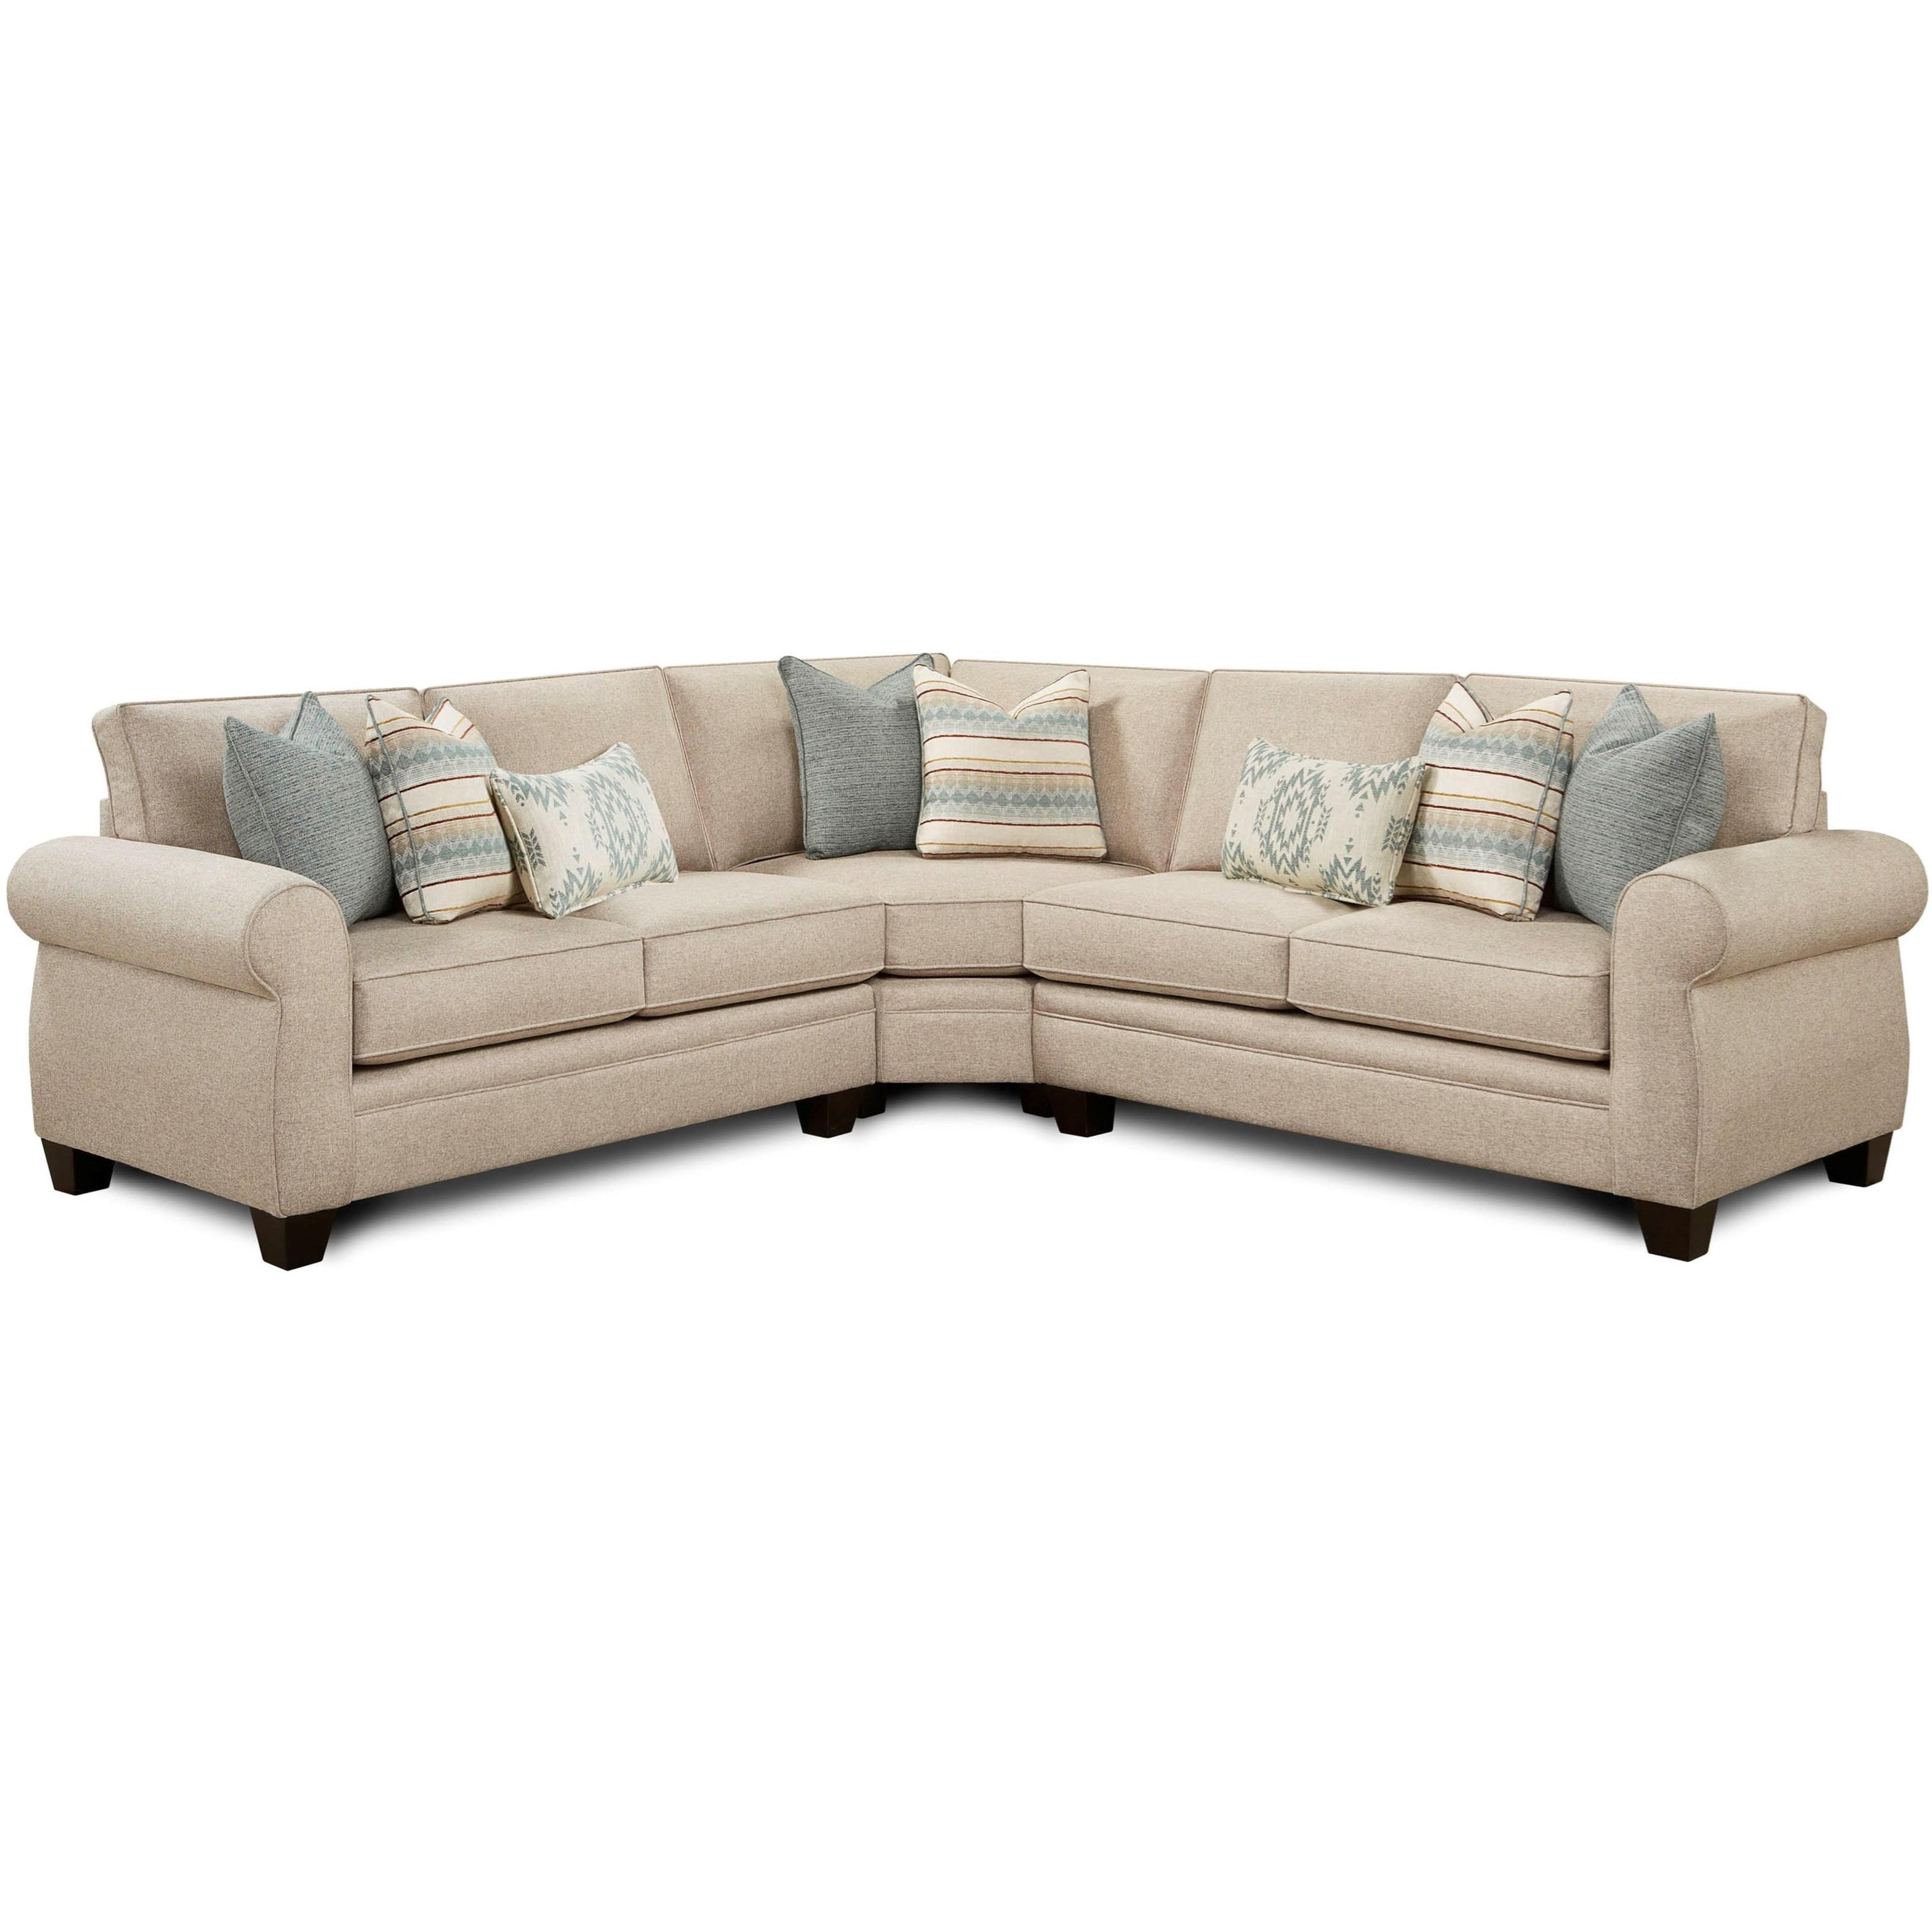 VFM Signature 1170 3-Piece Sectional - Item Number: 1170Infinity Fawn+1175+1170